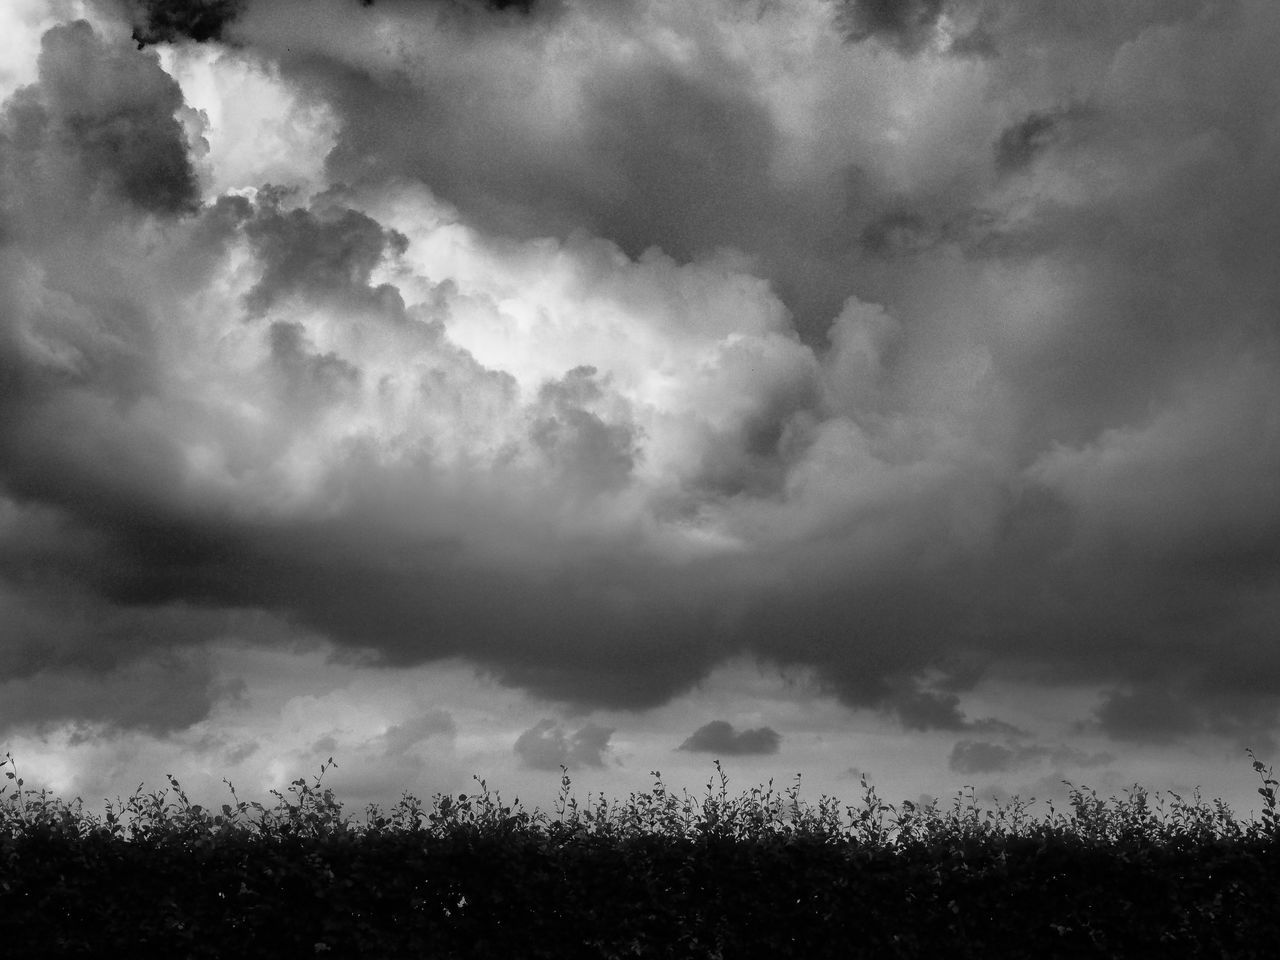 cloud - sky, sky, field, weather, nature, cloudscape, landscape, outdoors, storm cloud, scenics, beauty in nature, tranquility, no people, day, tranquil scene, agriculture, rural scene, grass, tree, thunderstorm